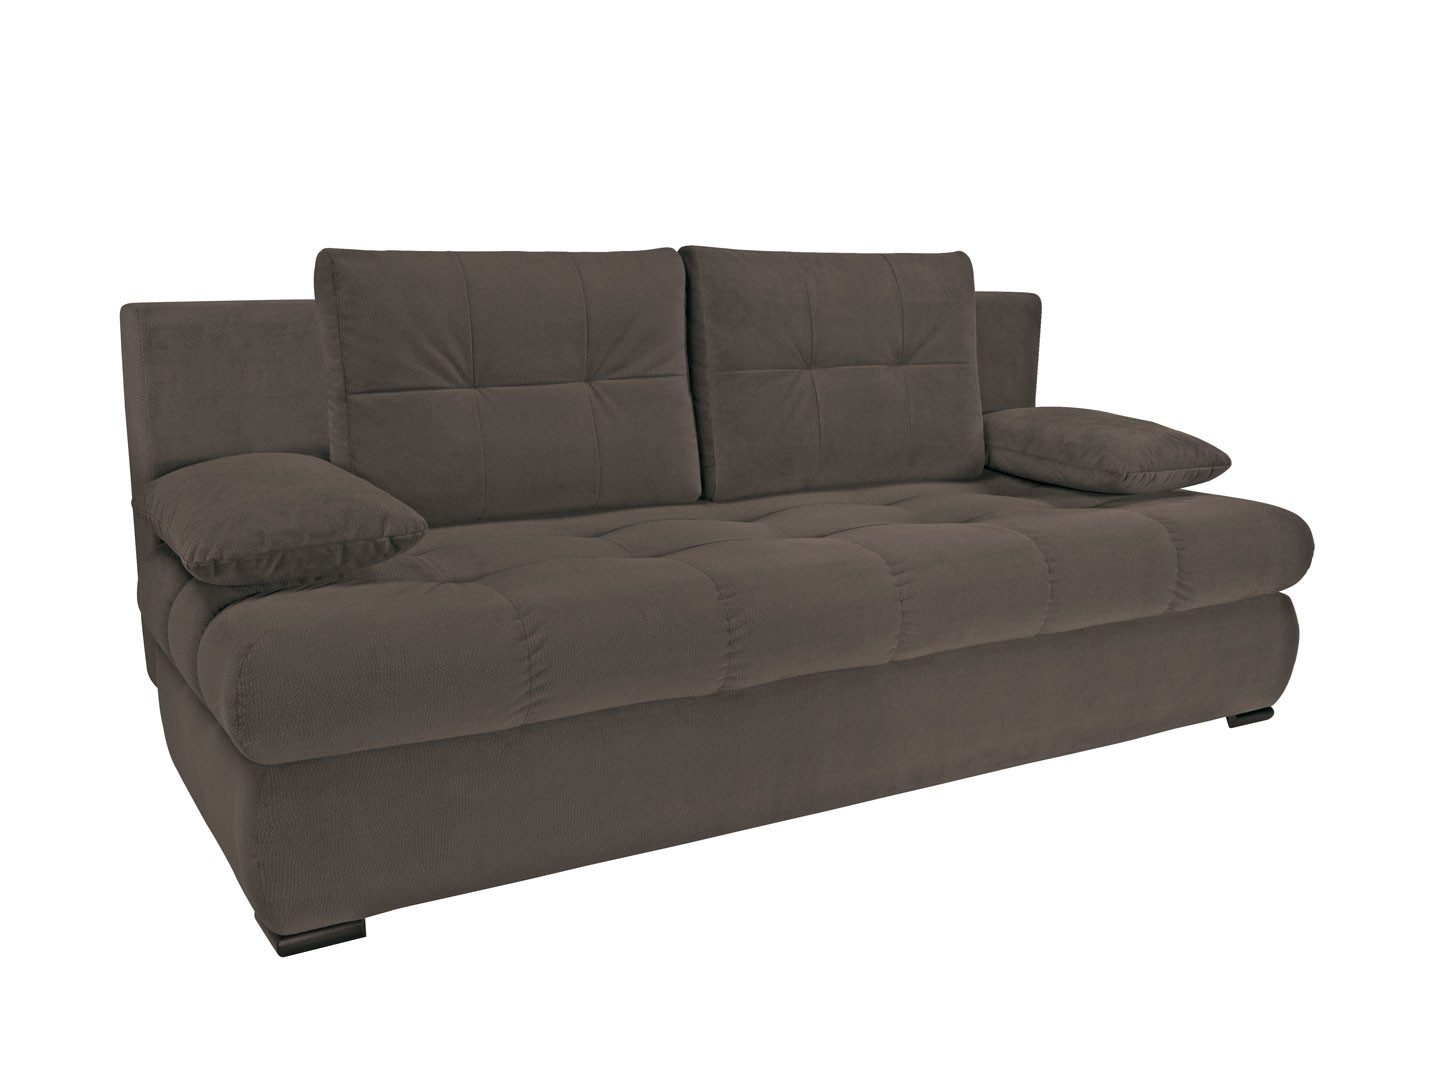 Sofa viper lux 3dl 204cm x 96cm x 105cm furniture store for G furniture mall meerut